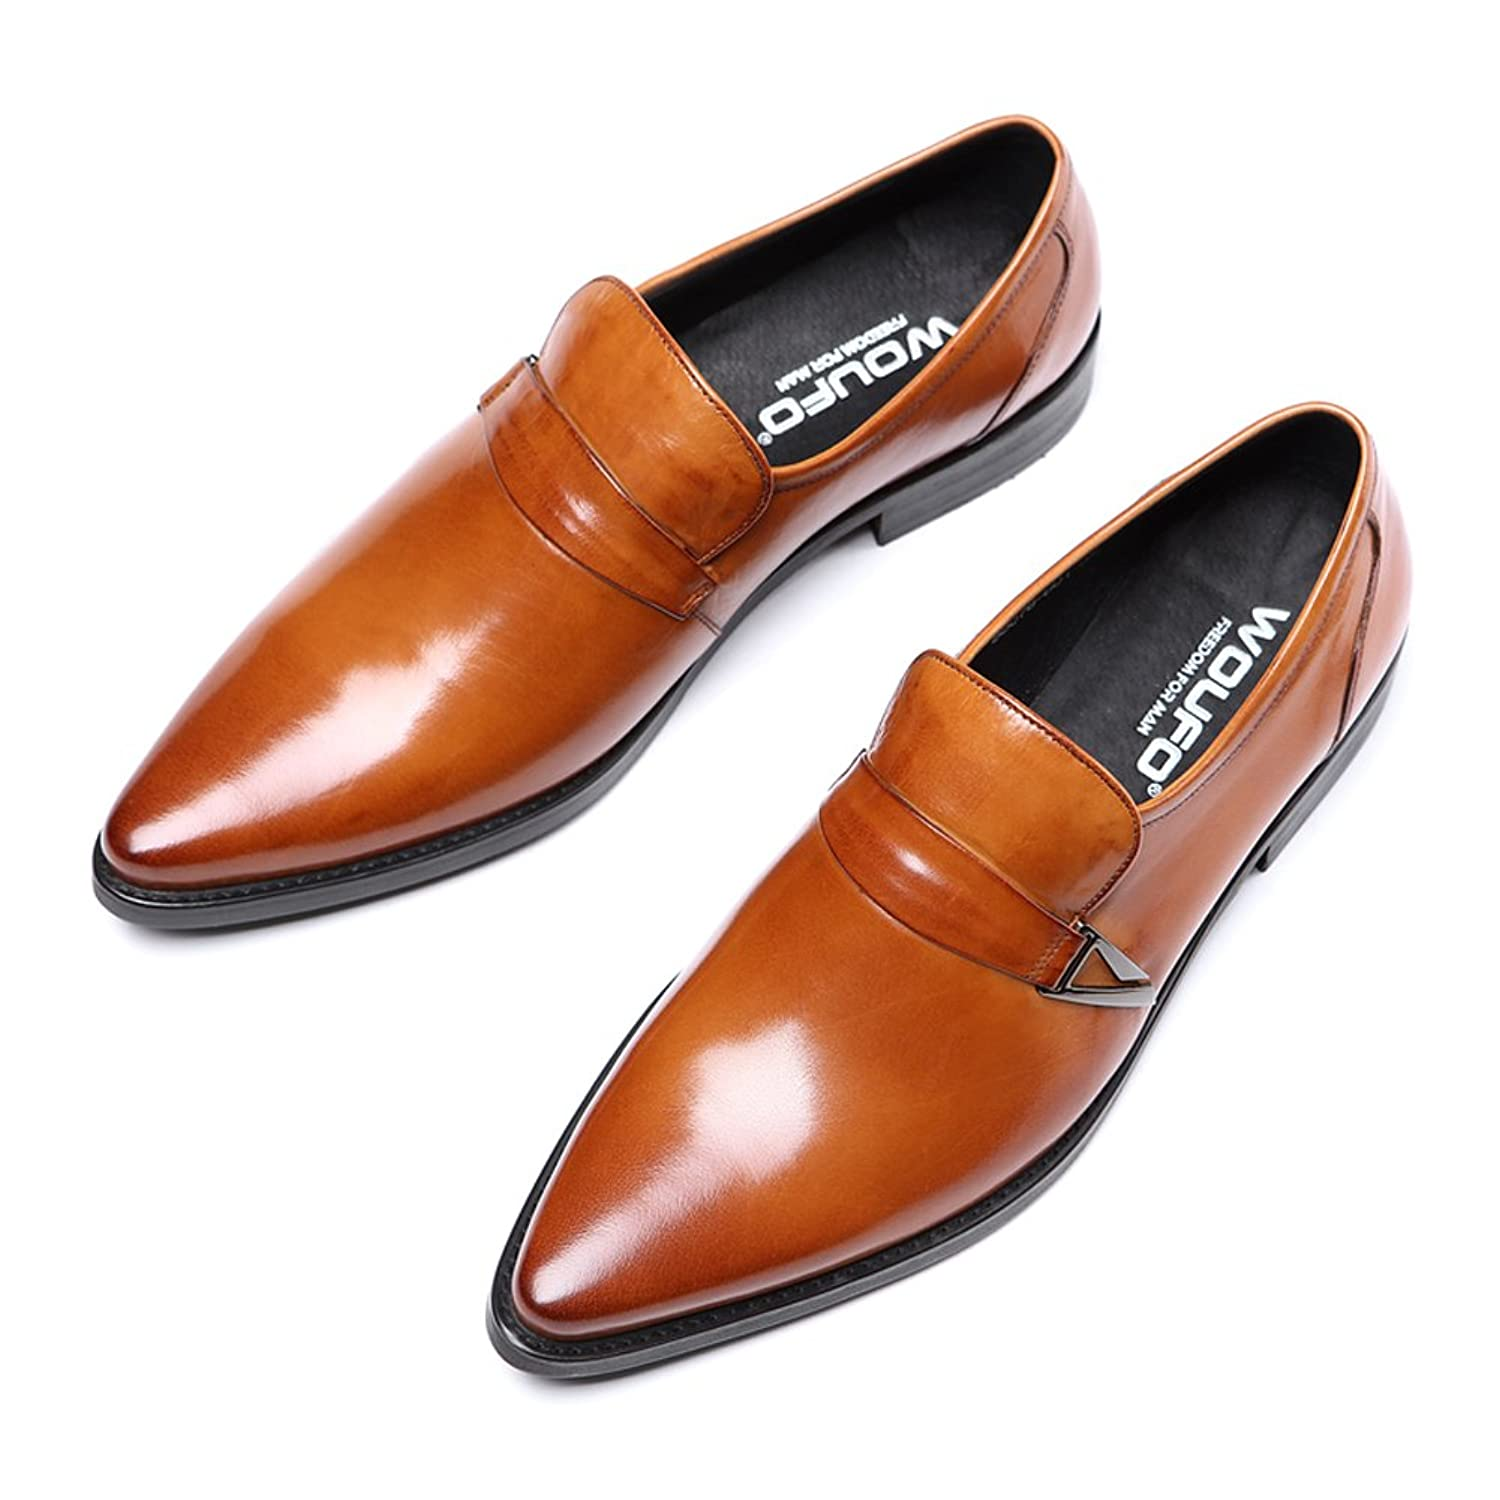 New Loafer Shoes/Innovative Penny ShoesGenuine LeatherPlain Pointed ToeRubber Sole; Fashion and Formal;Red US8.0=EU41